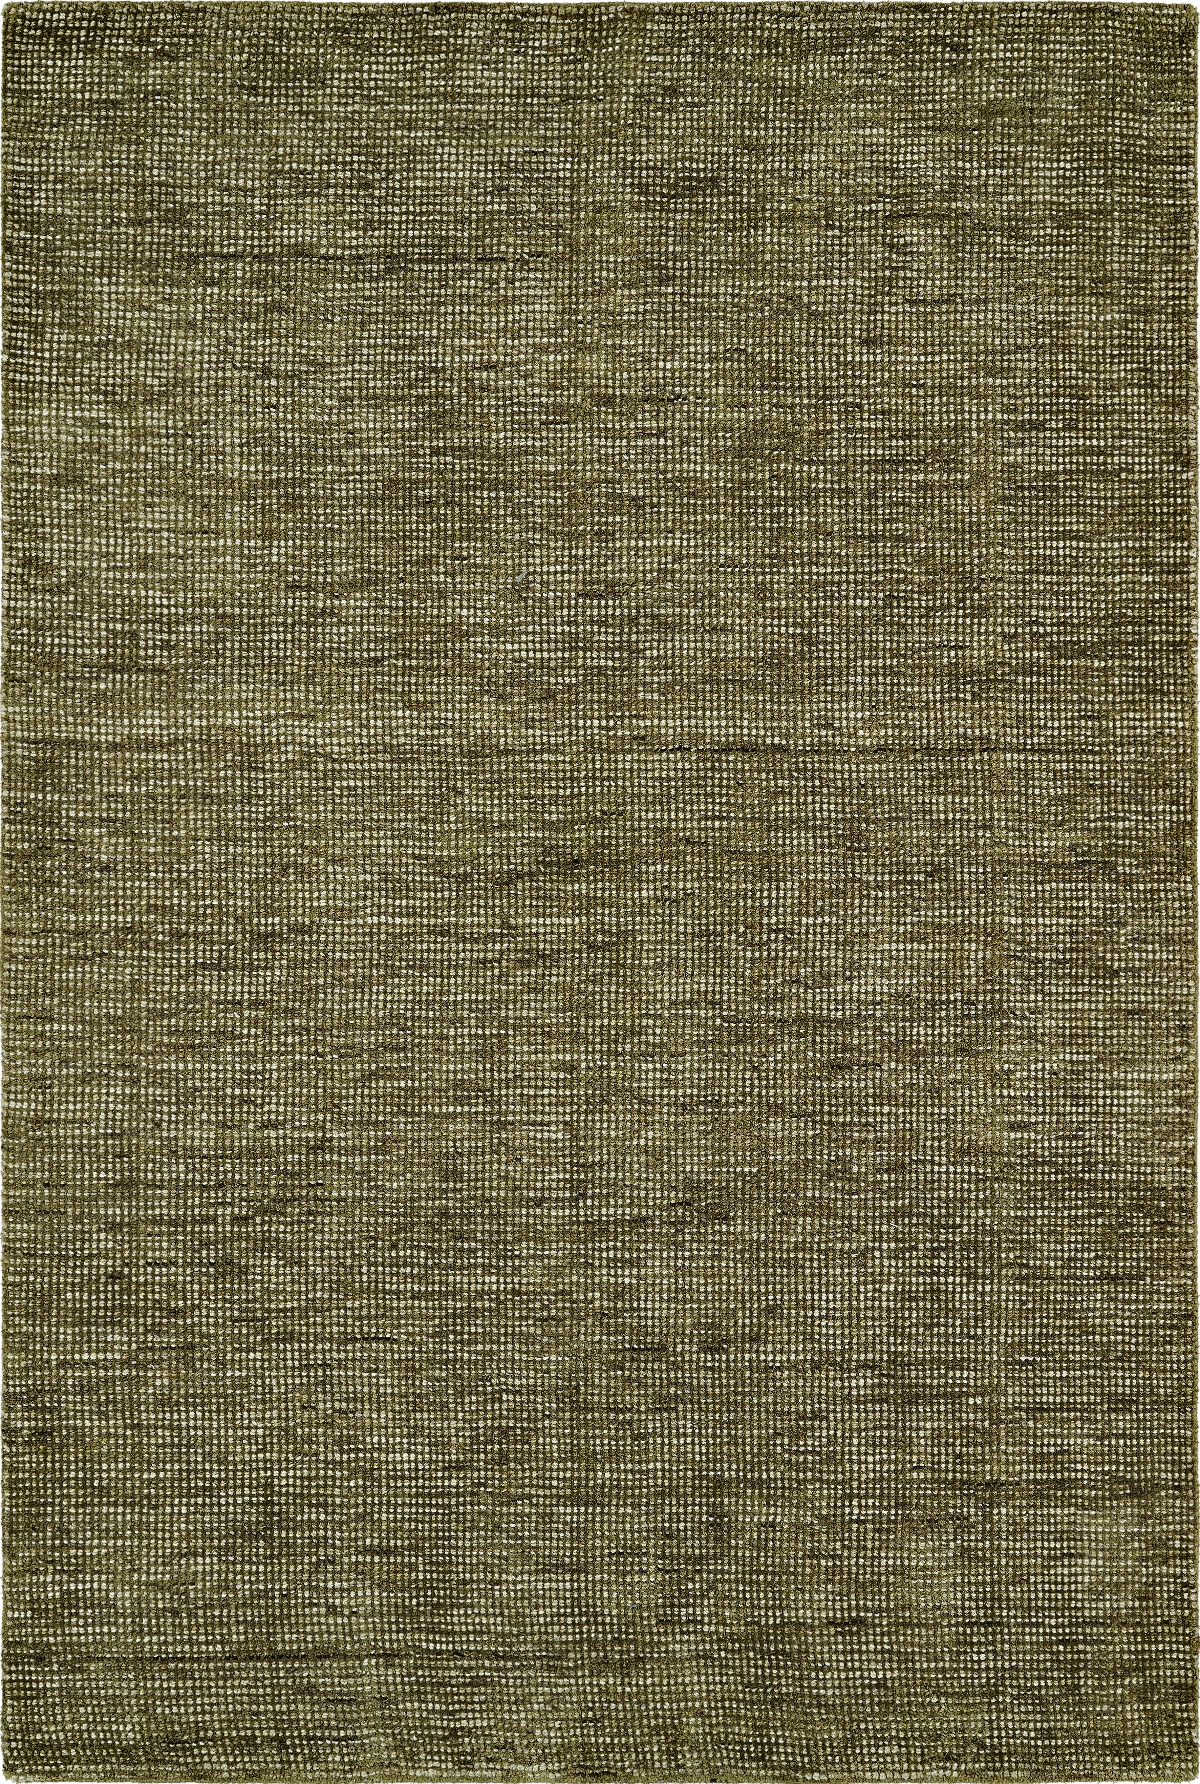 Dalyn Toro Tt100 Fern Area Rug Free Shipping